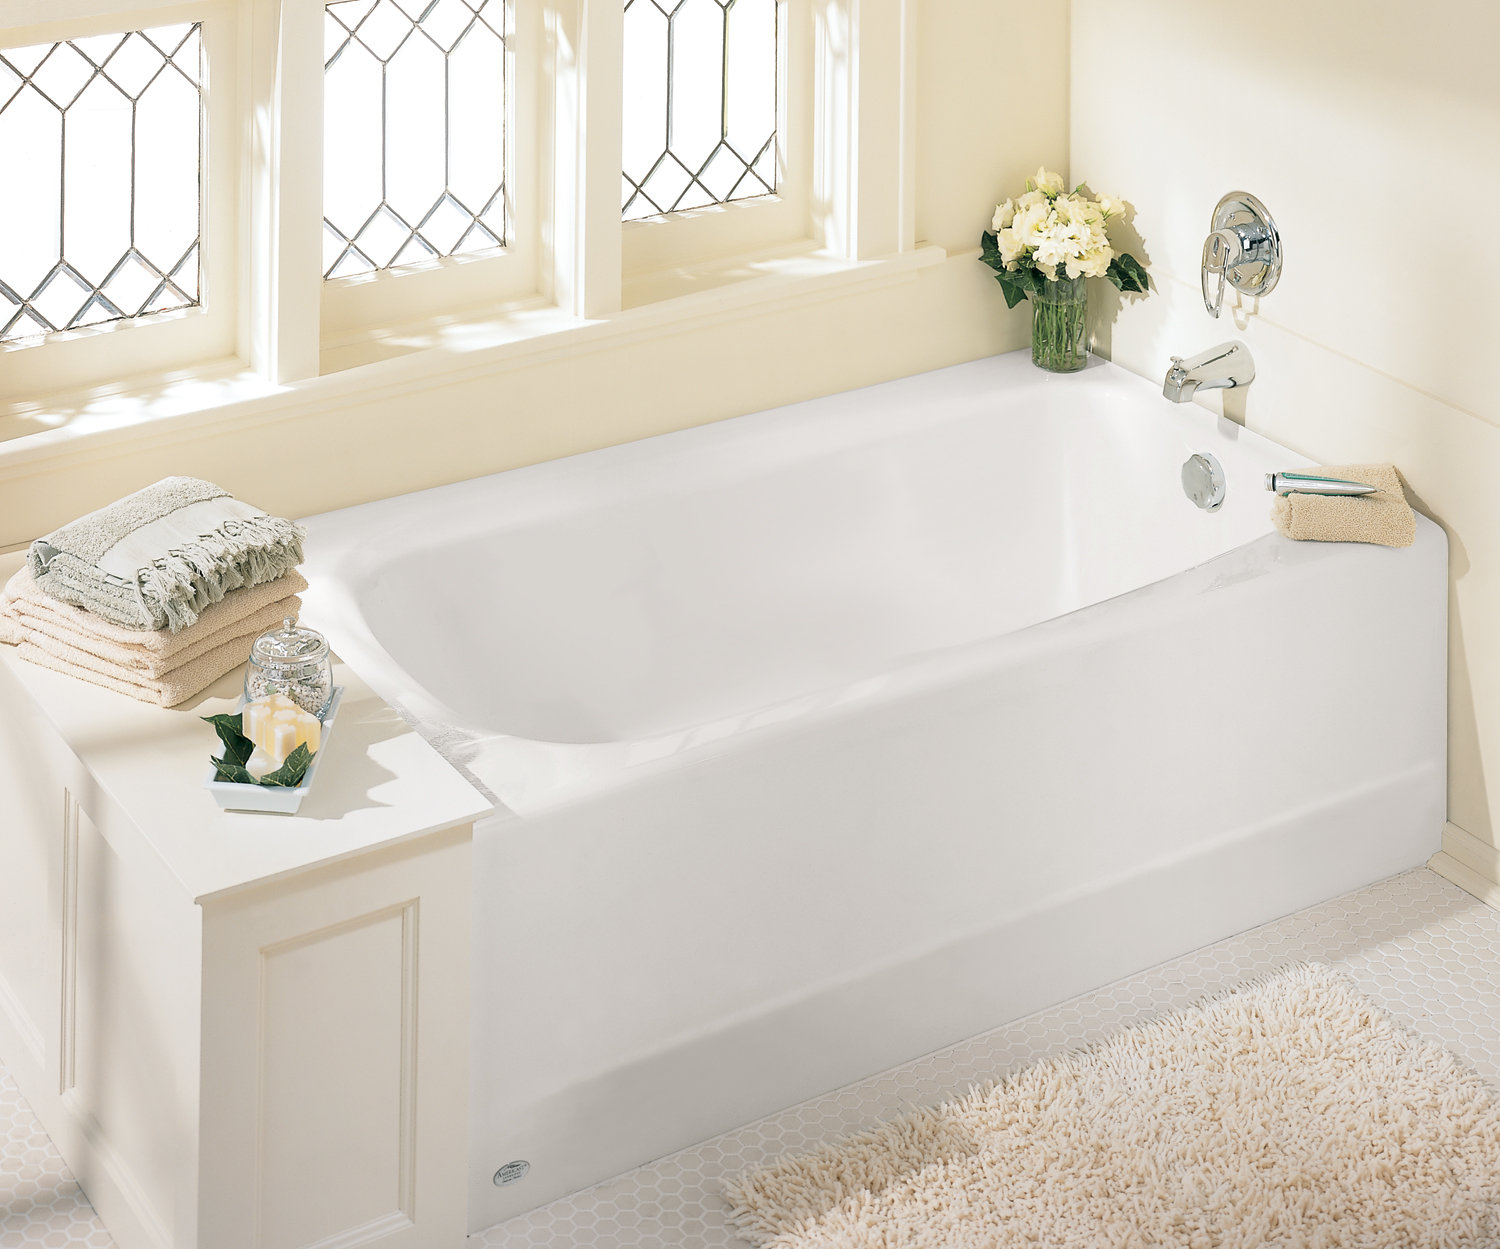 Bathtub buying guide tools home improvement for Deep built in bathtubs